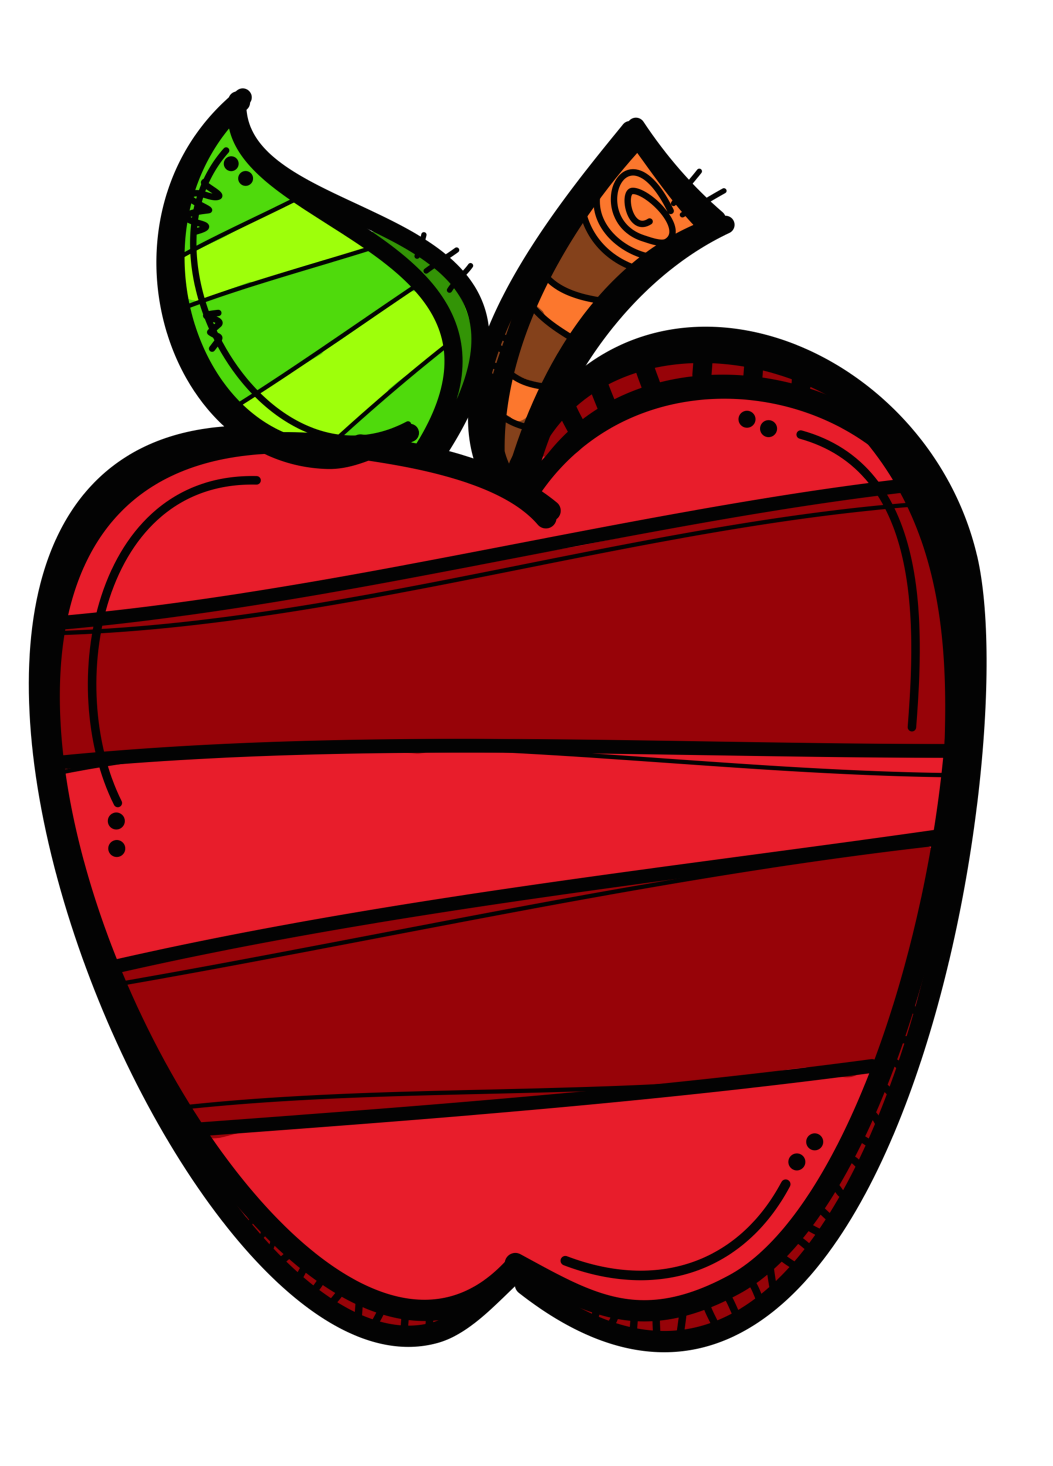 Teal apple clipart clip art free stock Pin by Kathleen Cummings on Art Ideas | Pinterest | Apples, Clip art ... clip art free stock